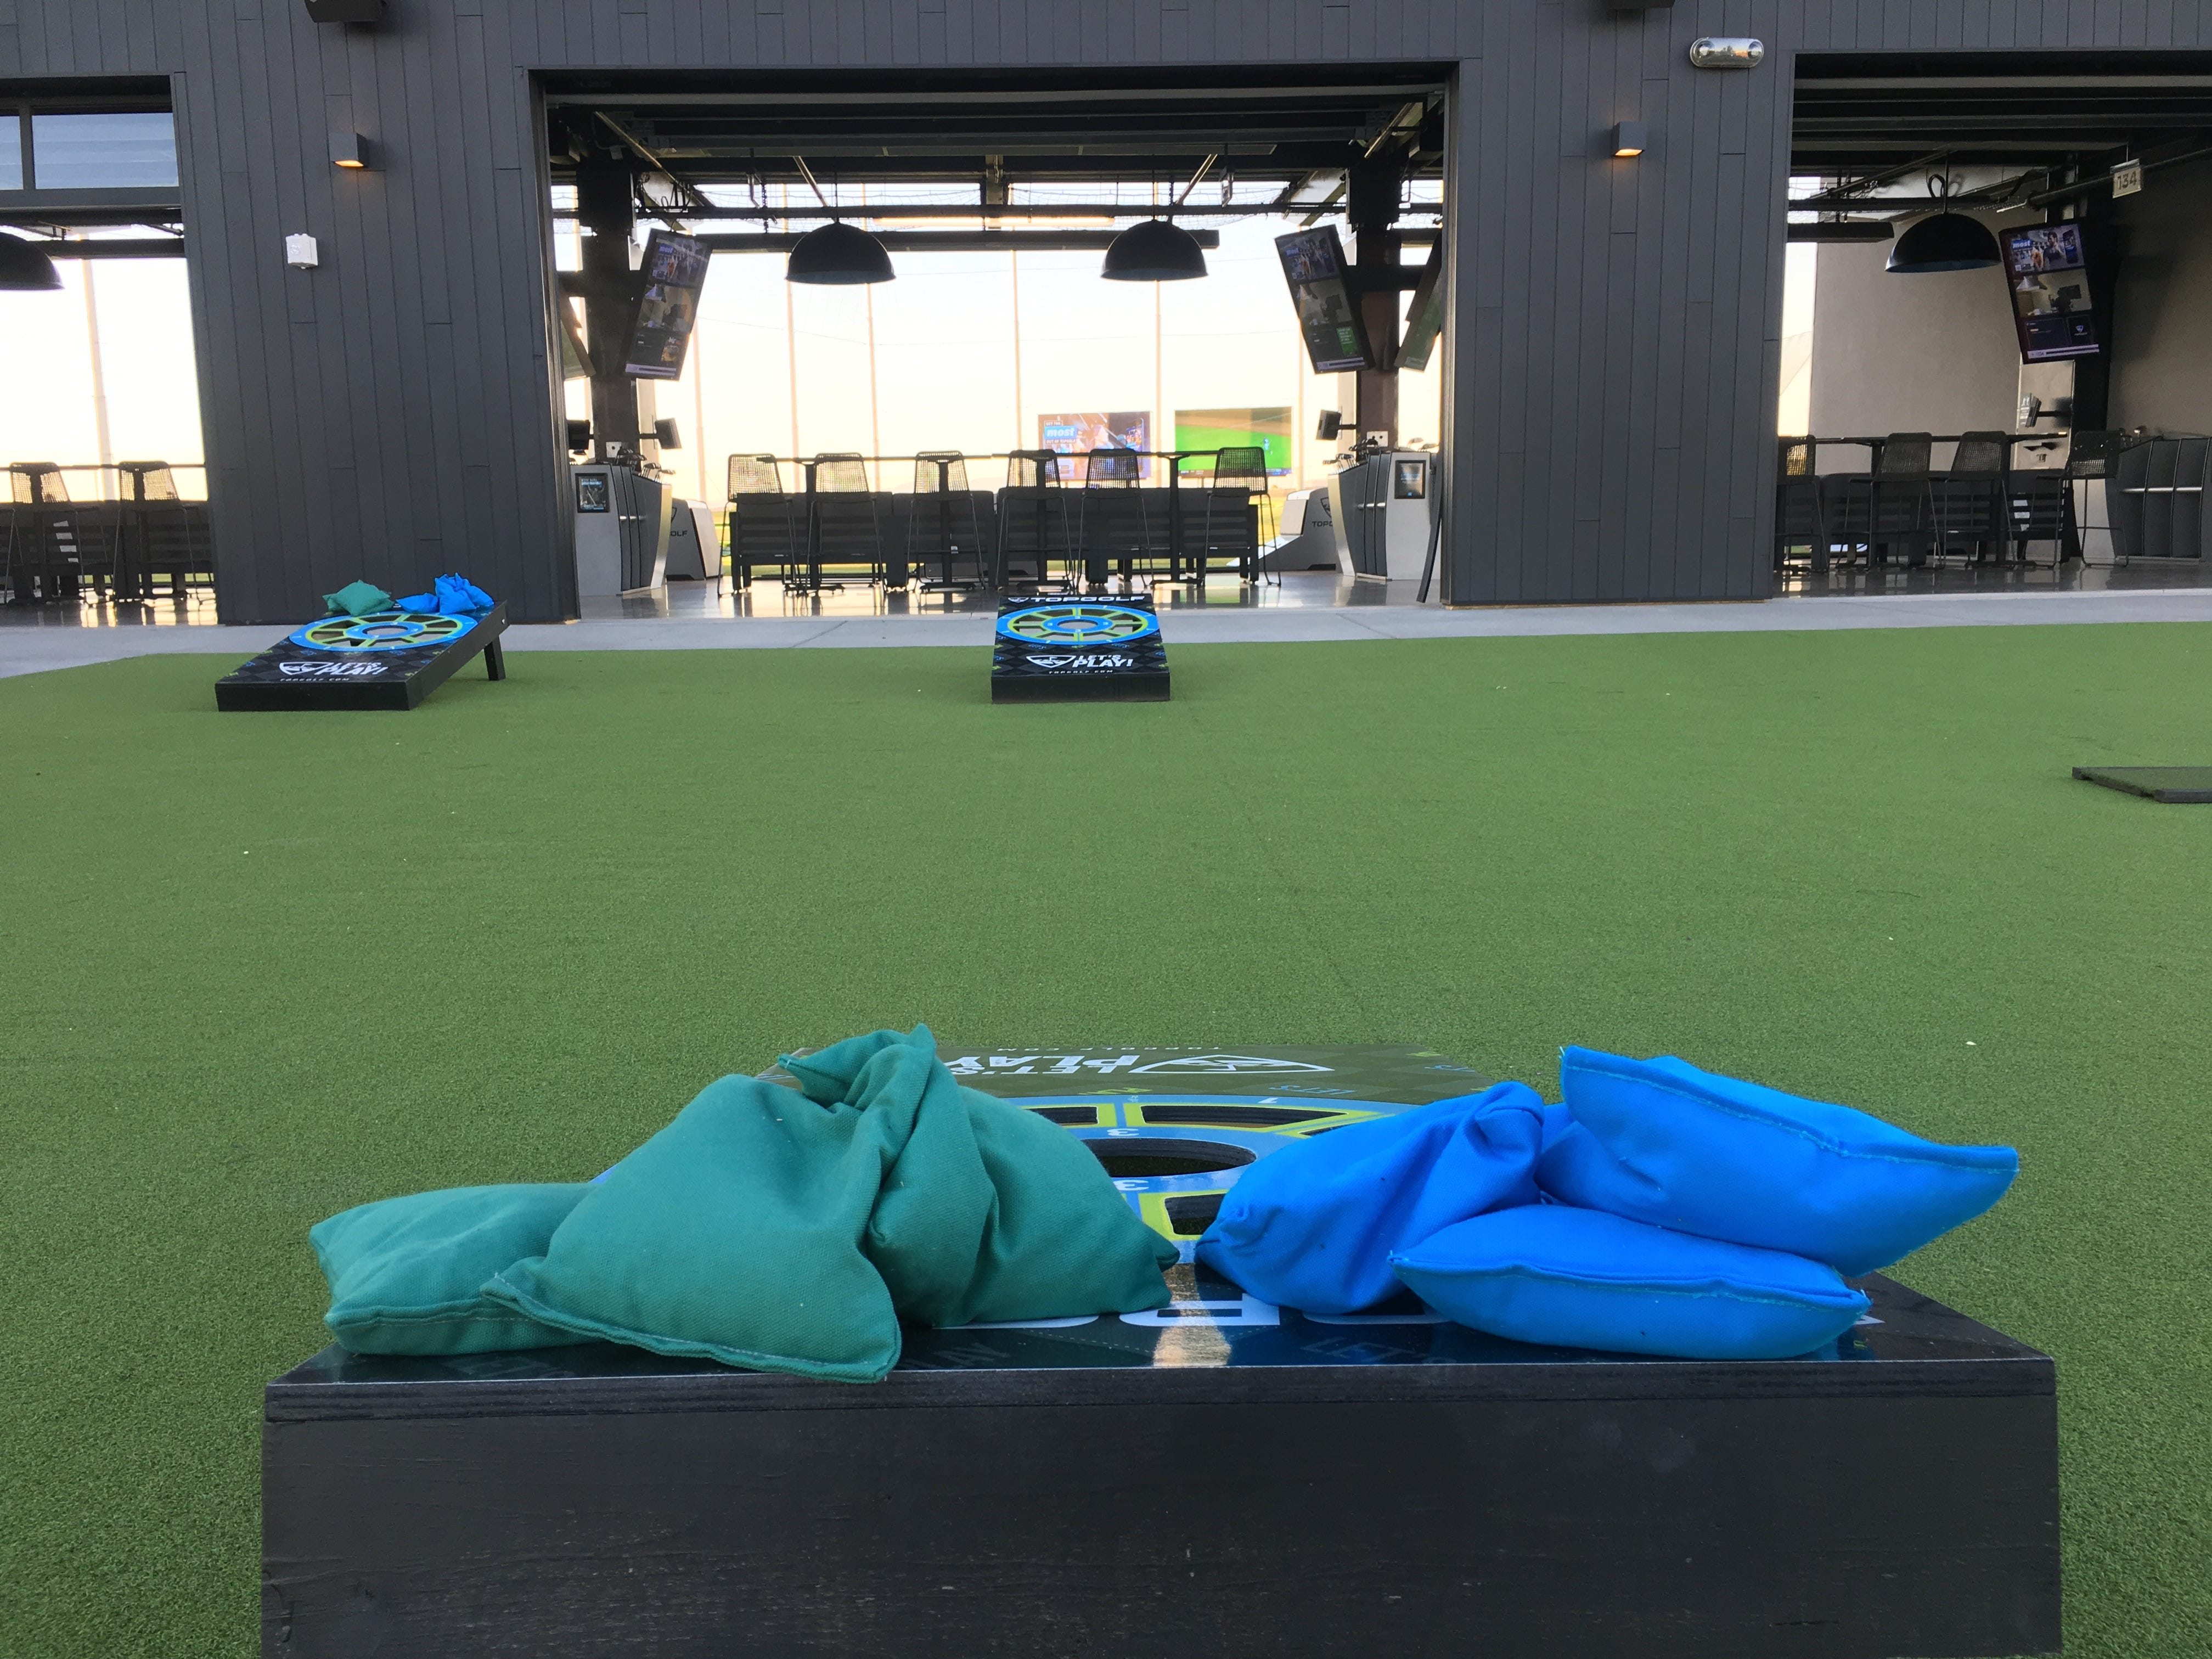 Topgolf Glendale's outdoor patio on the first floor features an area for cornhole and is unique to the West Valley location.